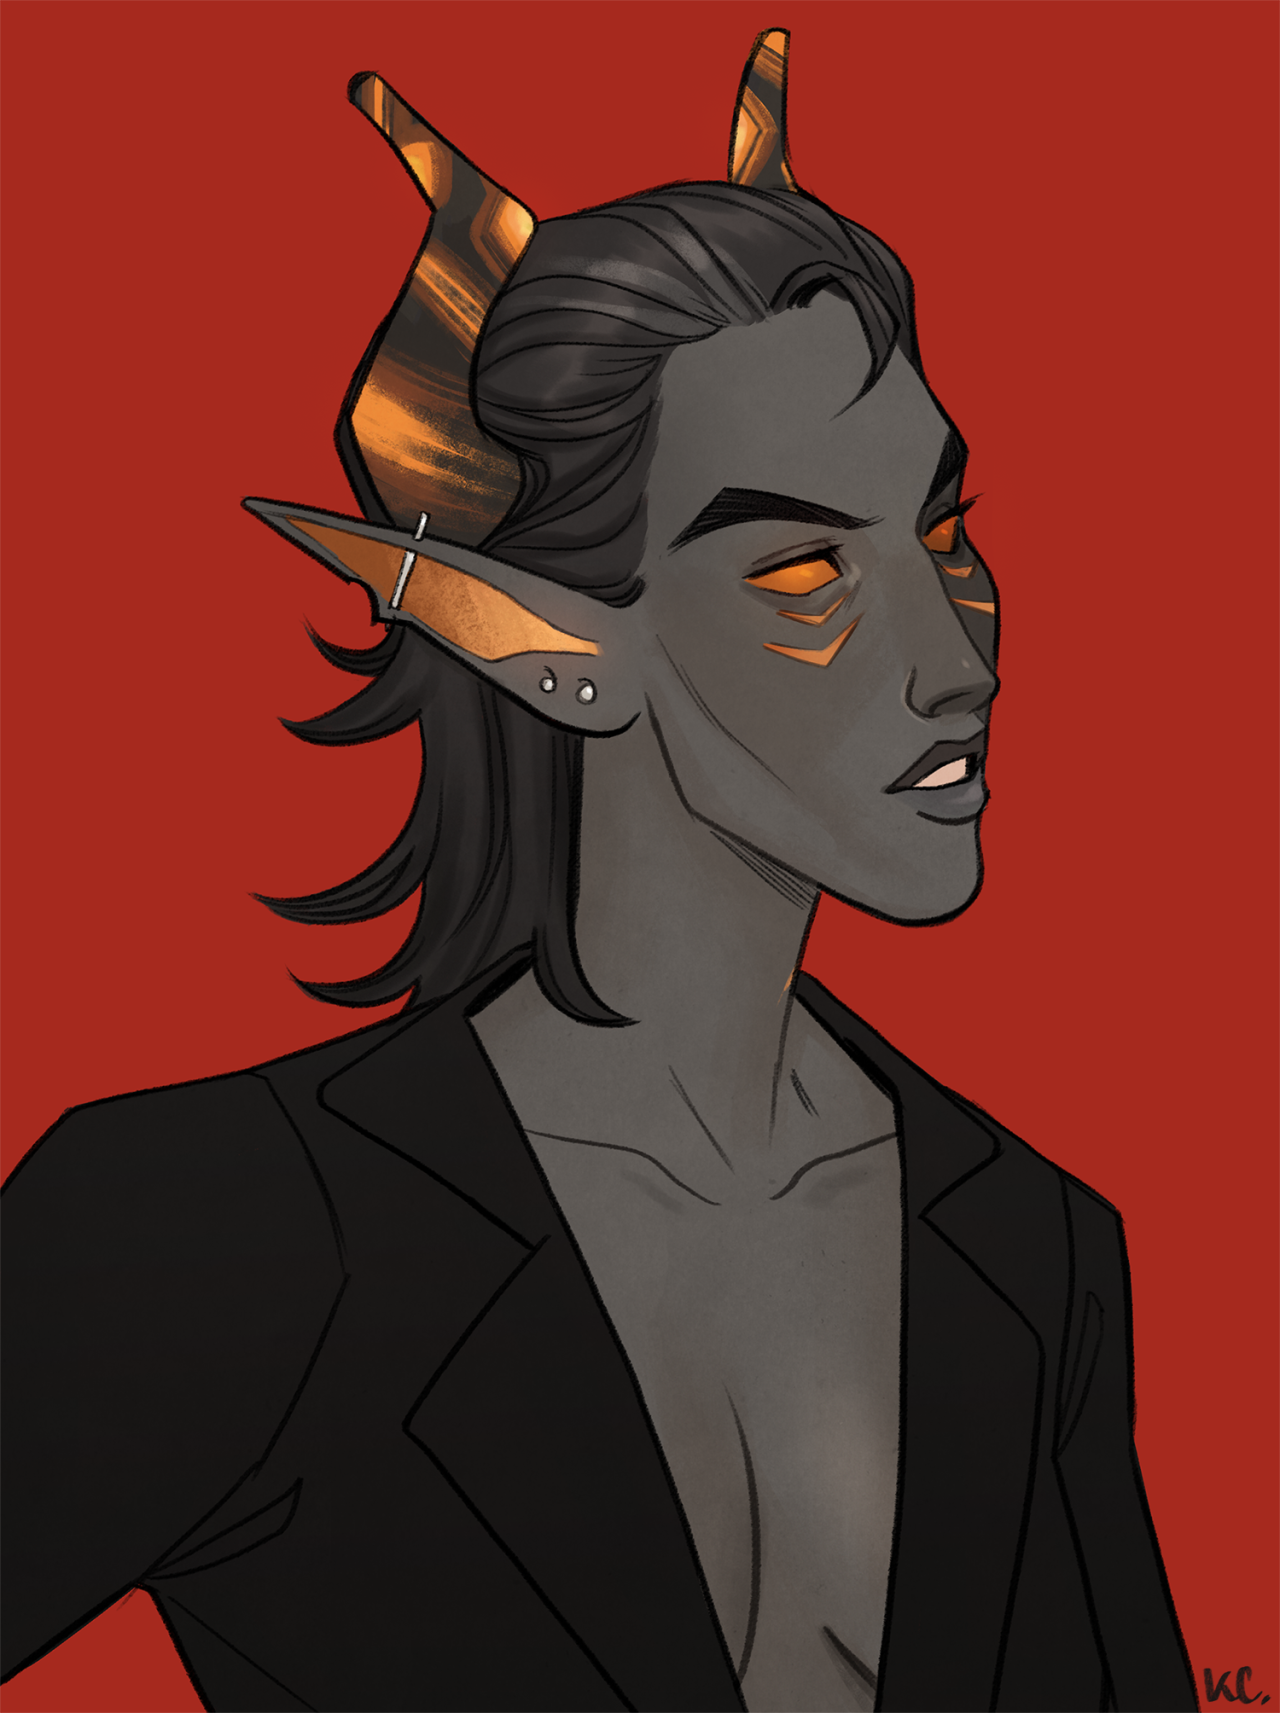 made a new tiefling warlock/paladin named crow! she's very much an oc that shoved her way to the front of my brain and won't leave me alone. this isn't her usual armour/clothes, just wanted to draw some boobs and hairshe's an original adopt design by apotheosisadoptables! #dungeons and dragons #tiefling#warlock#paladin#dnd#d&d#ocs#drawerings#crow #another lesbab for my collection